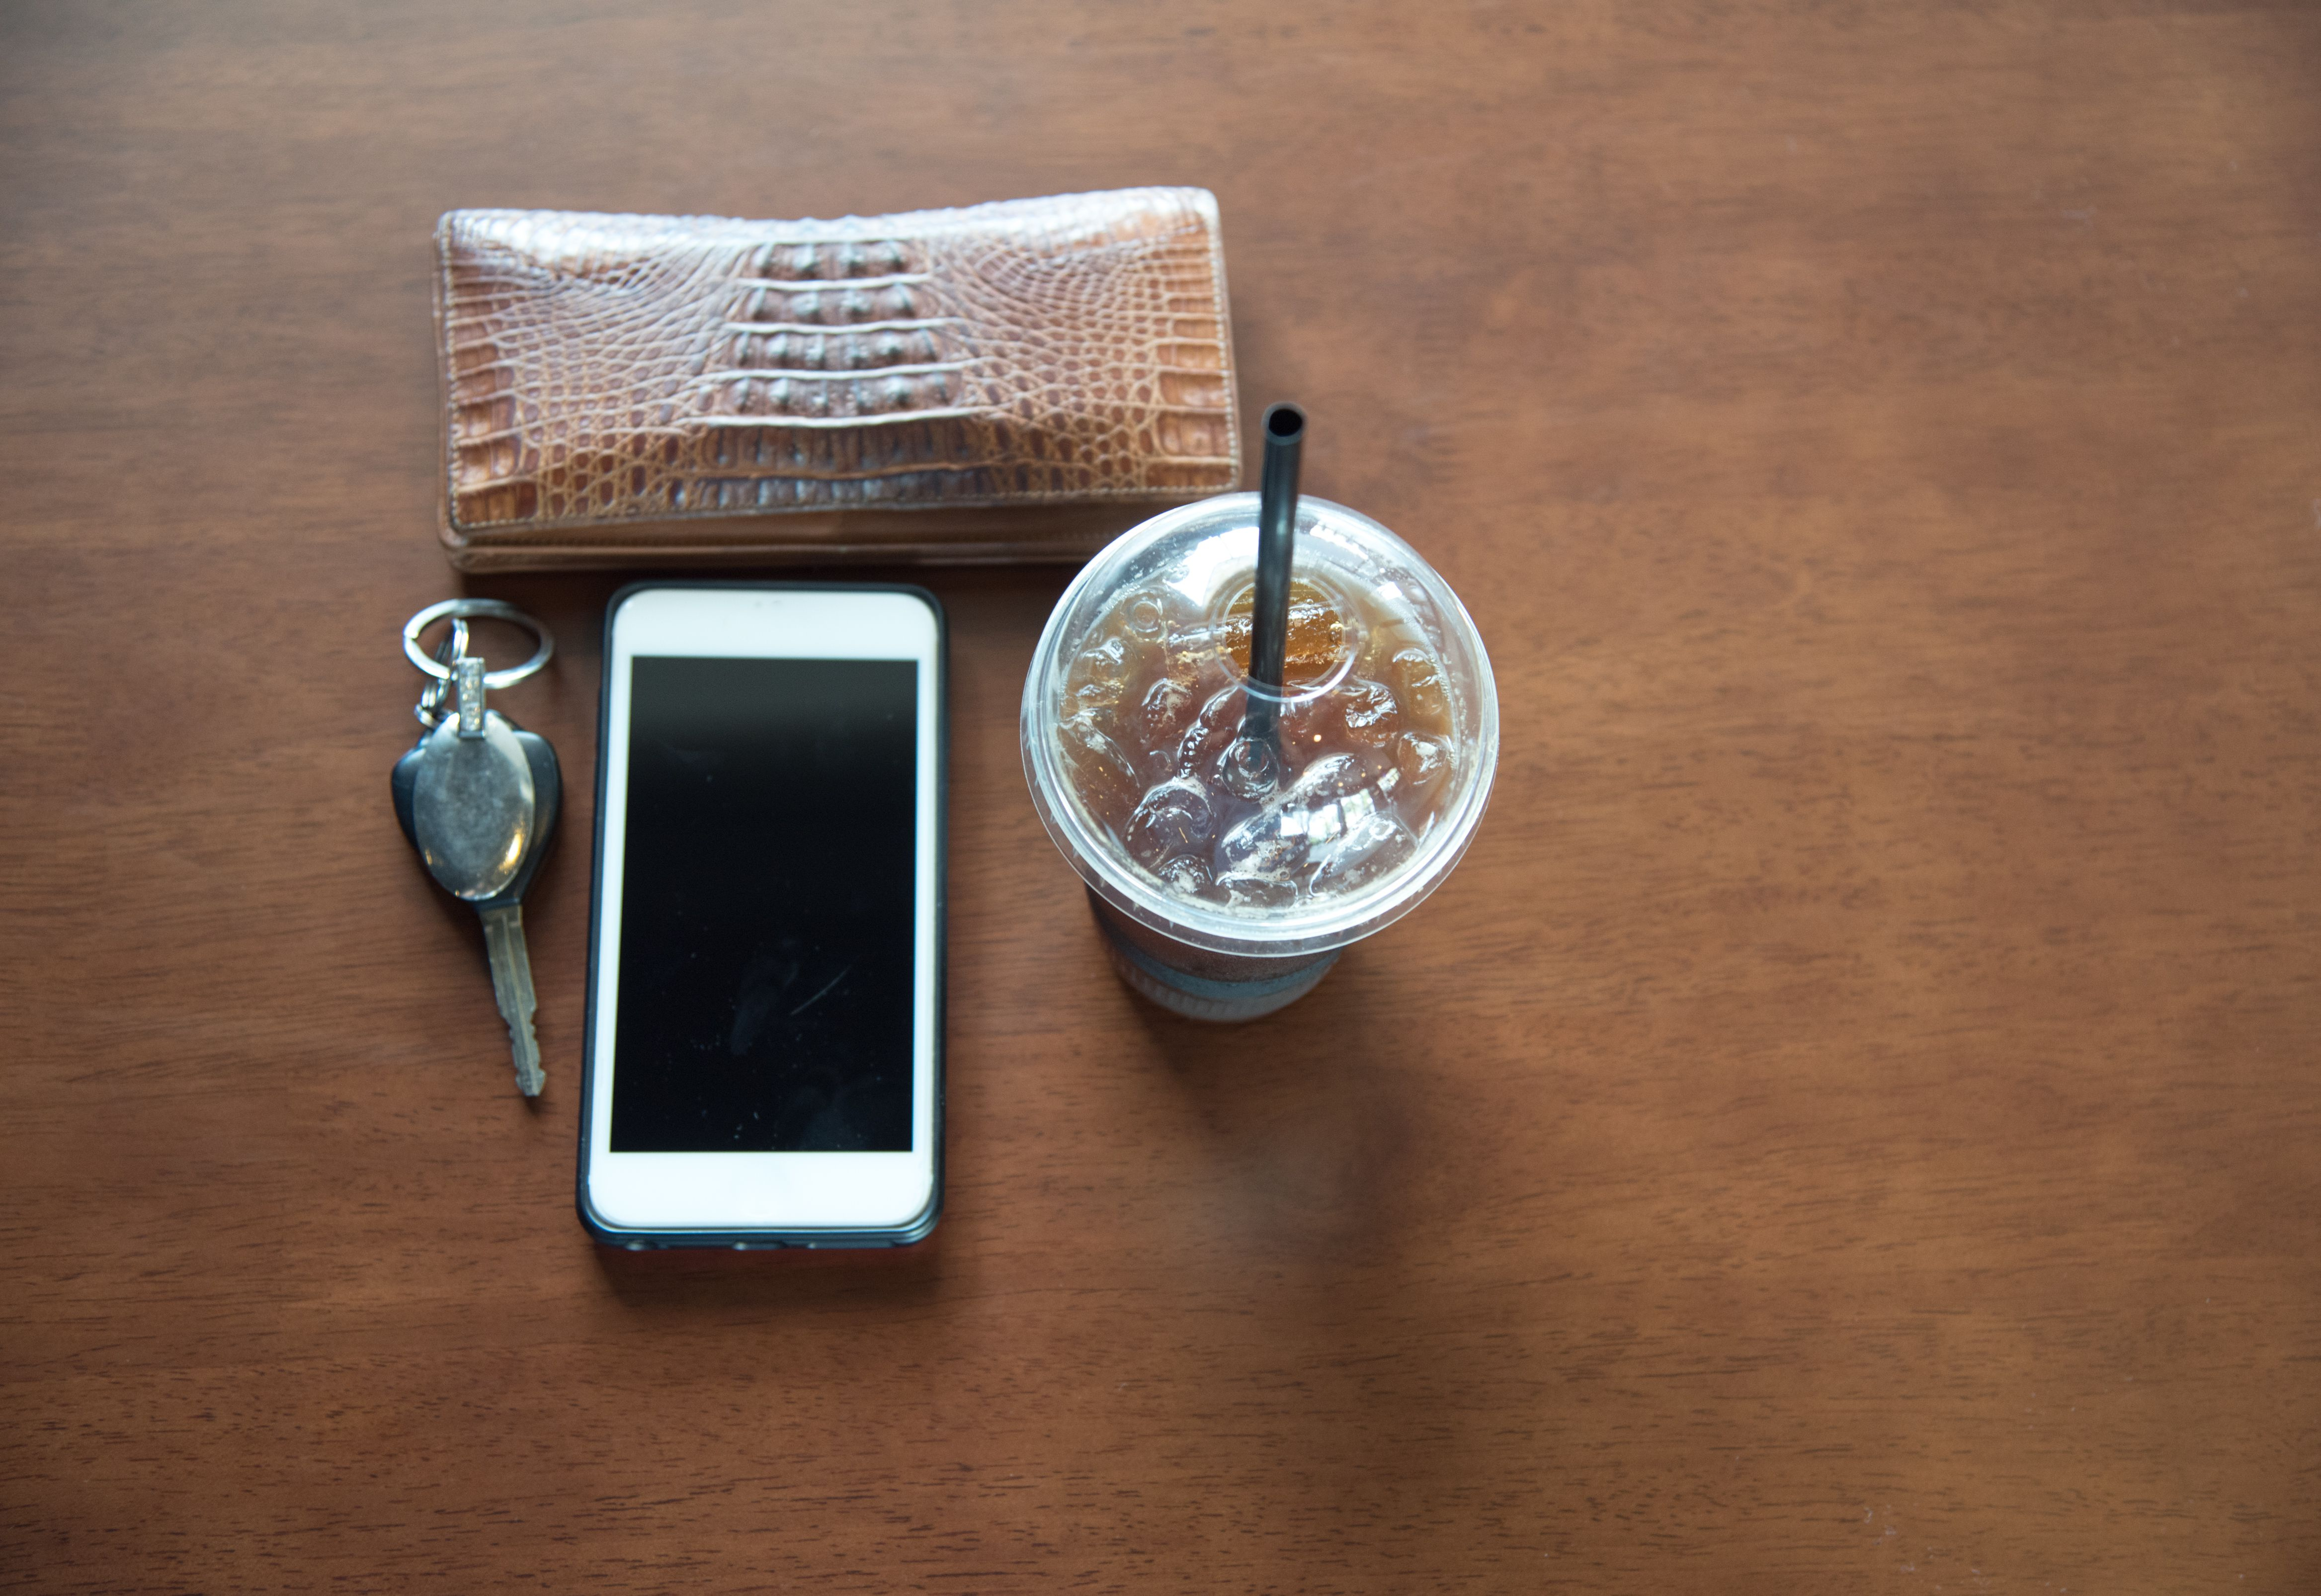 High Angle View of Smart Phone and Drink With Purse